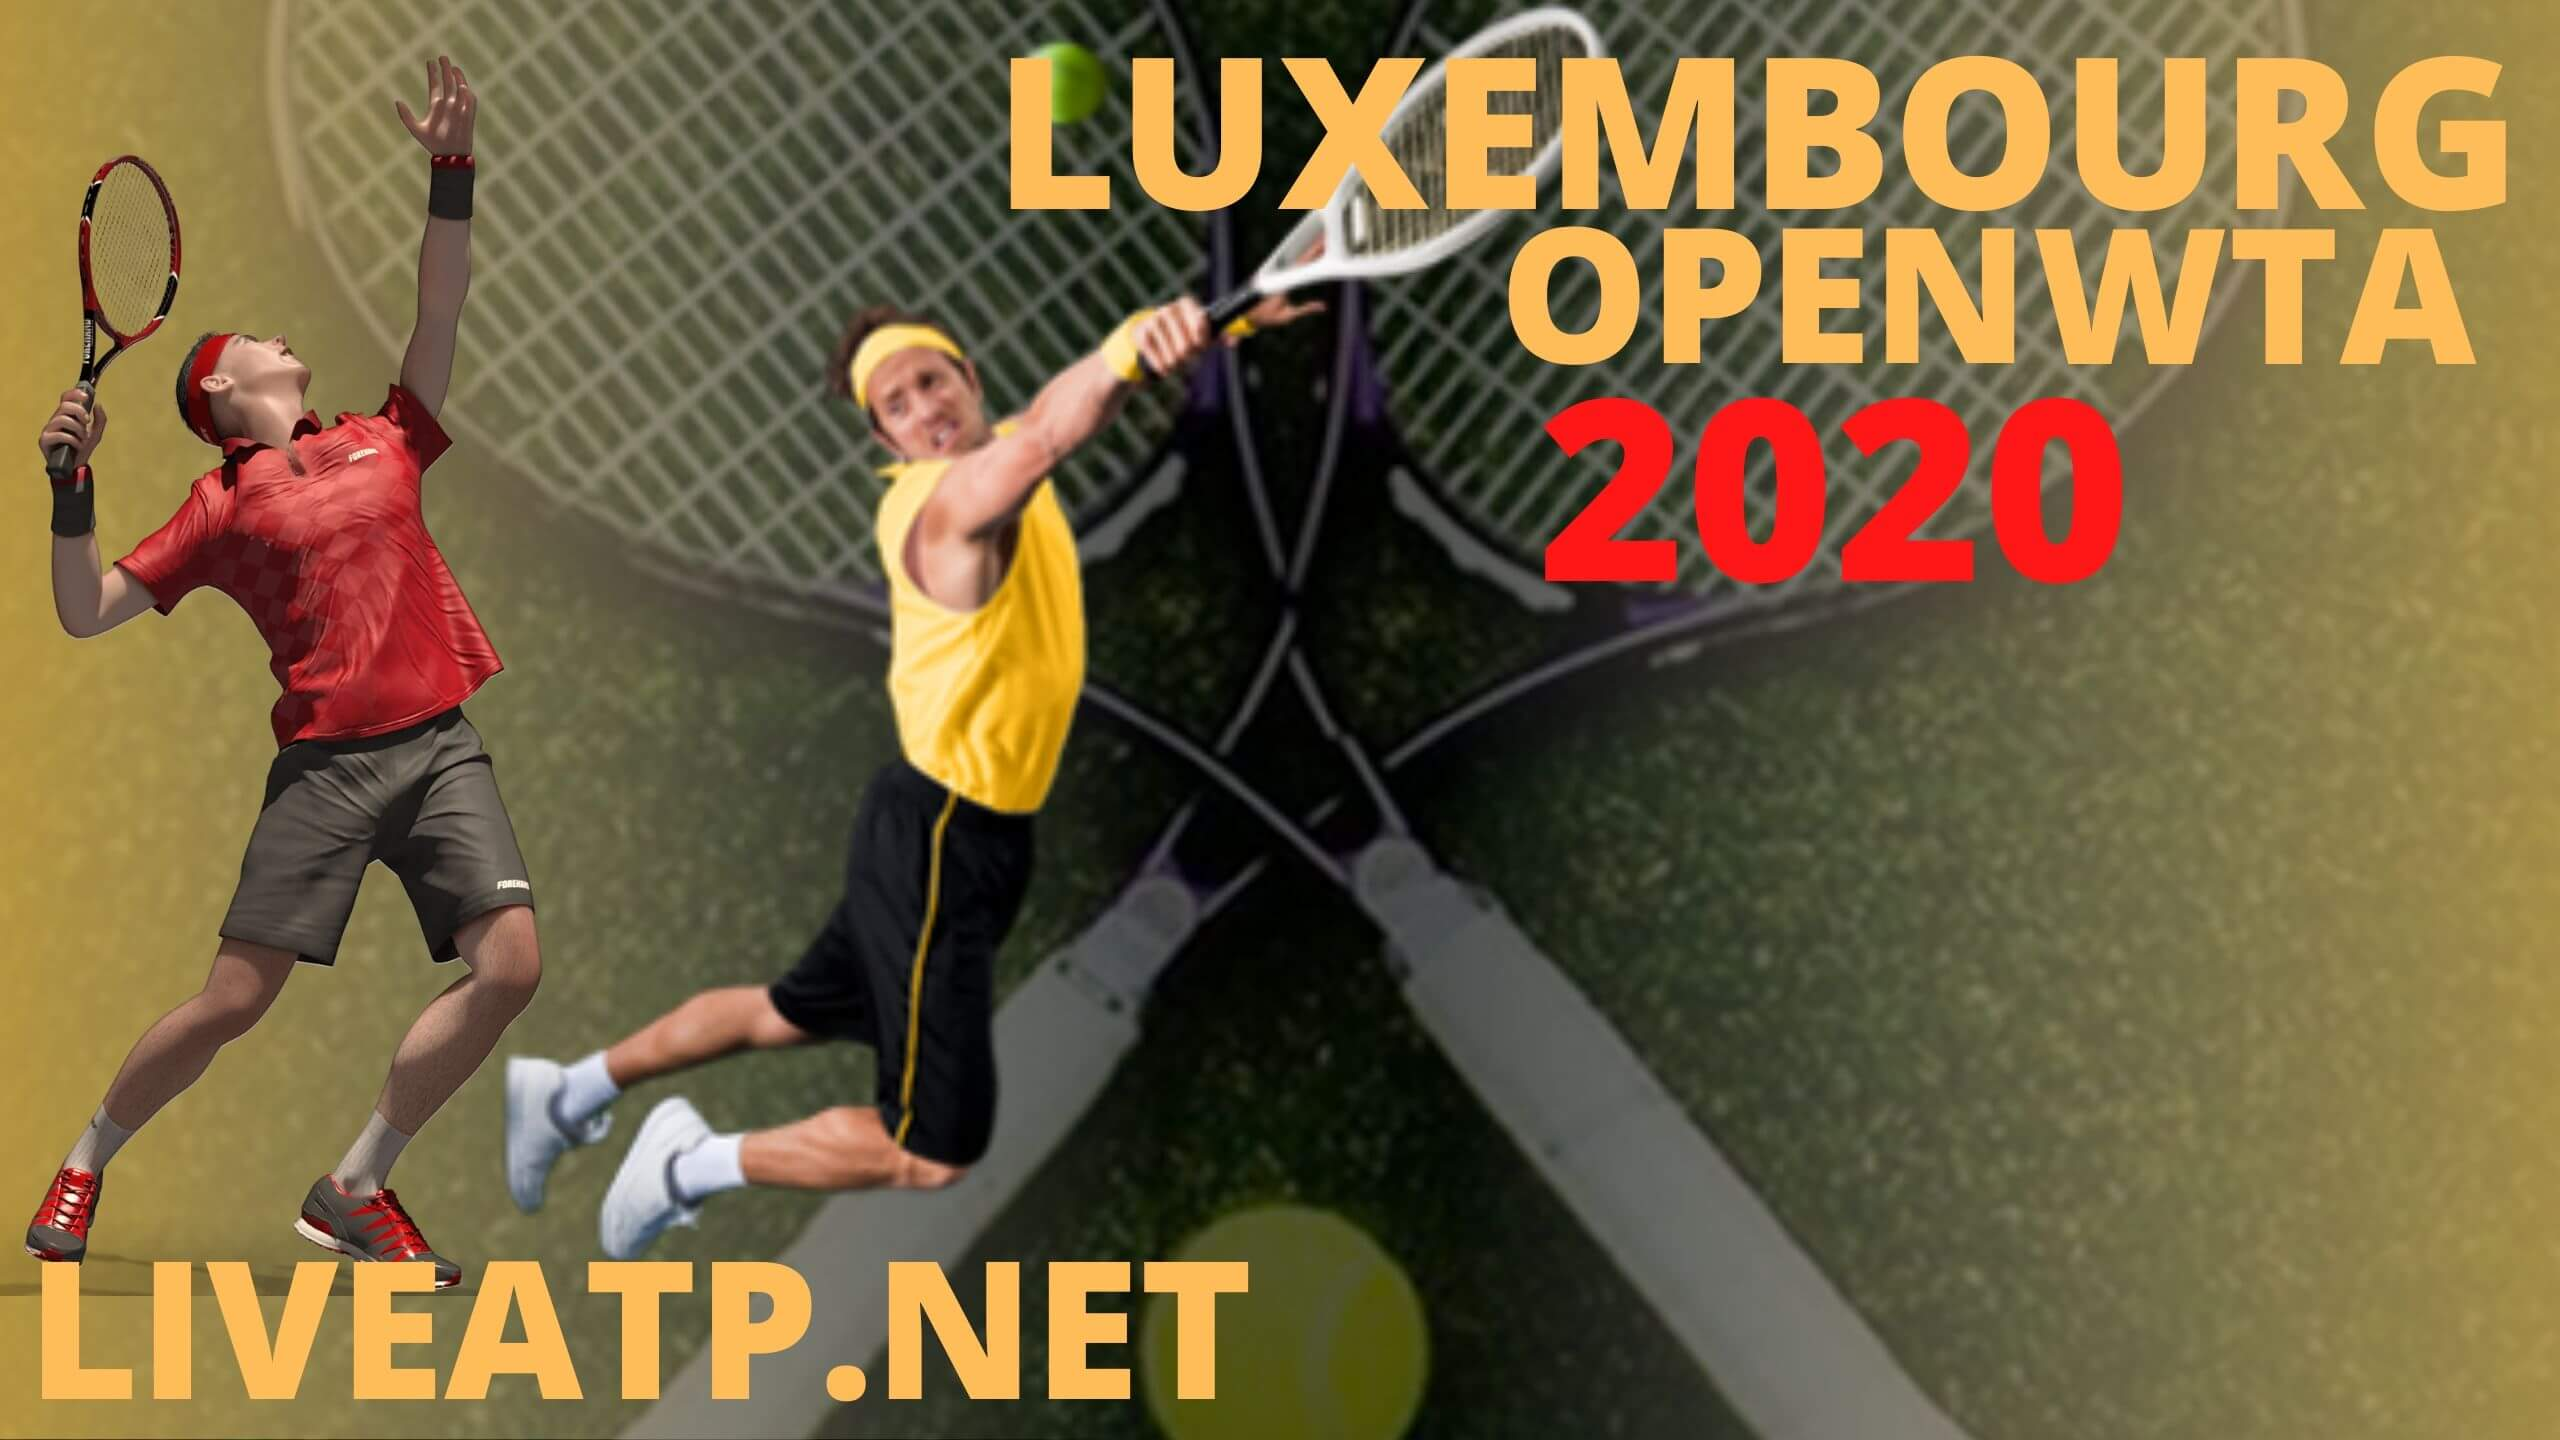 Luxembourg Open Live Stream 2020 | Day 5